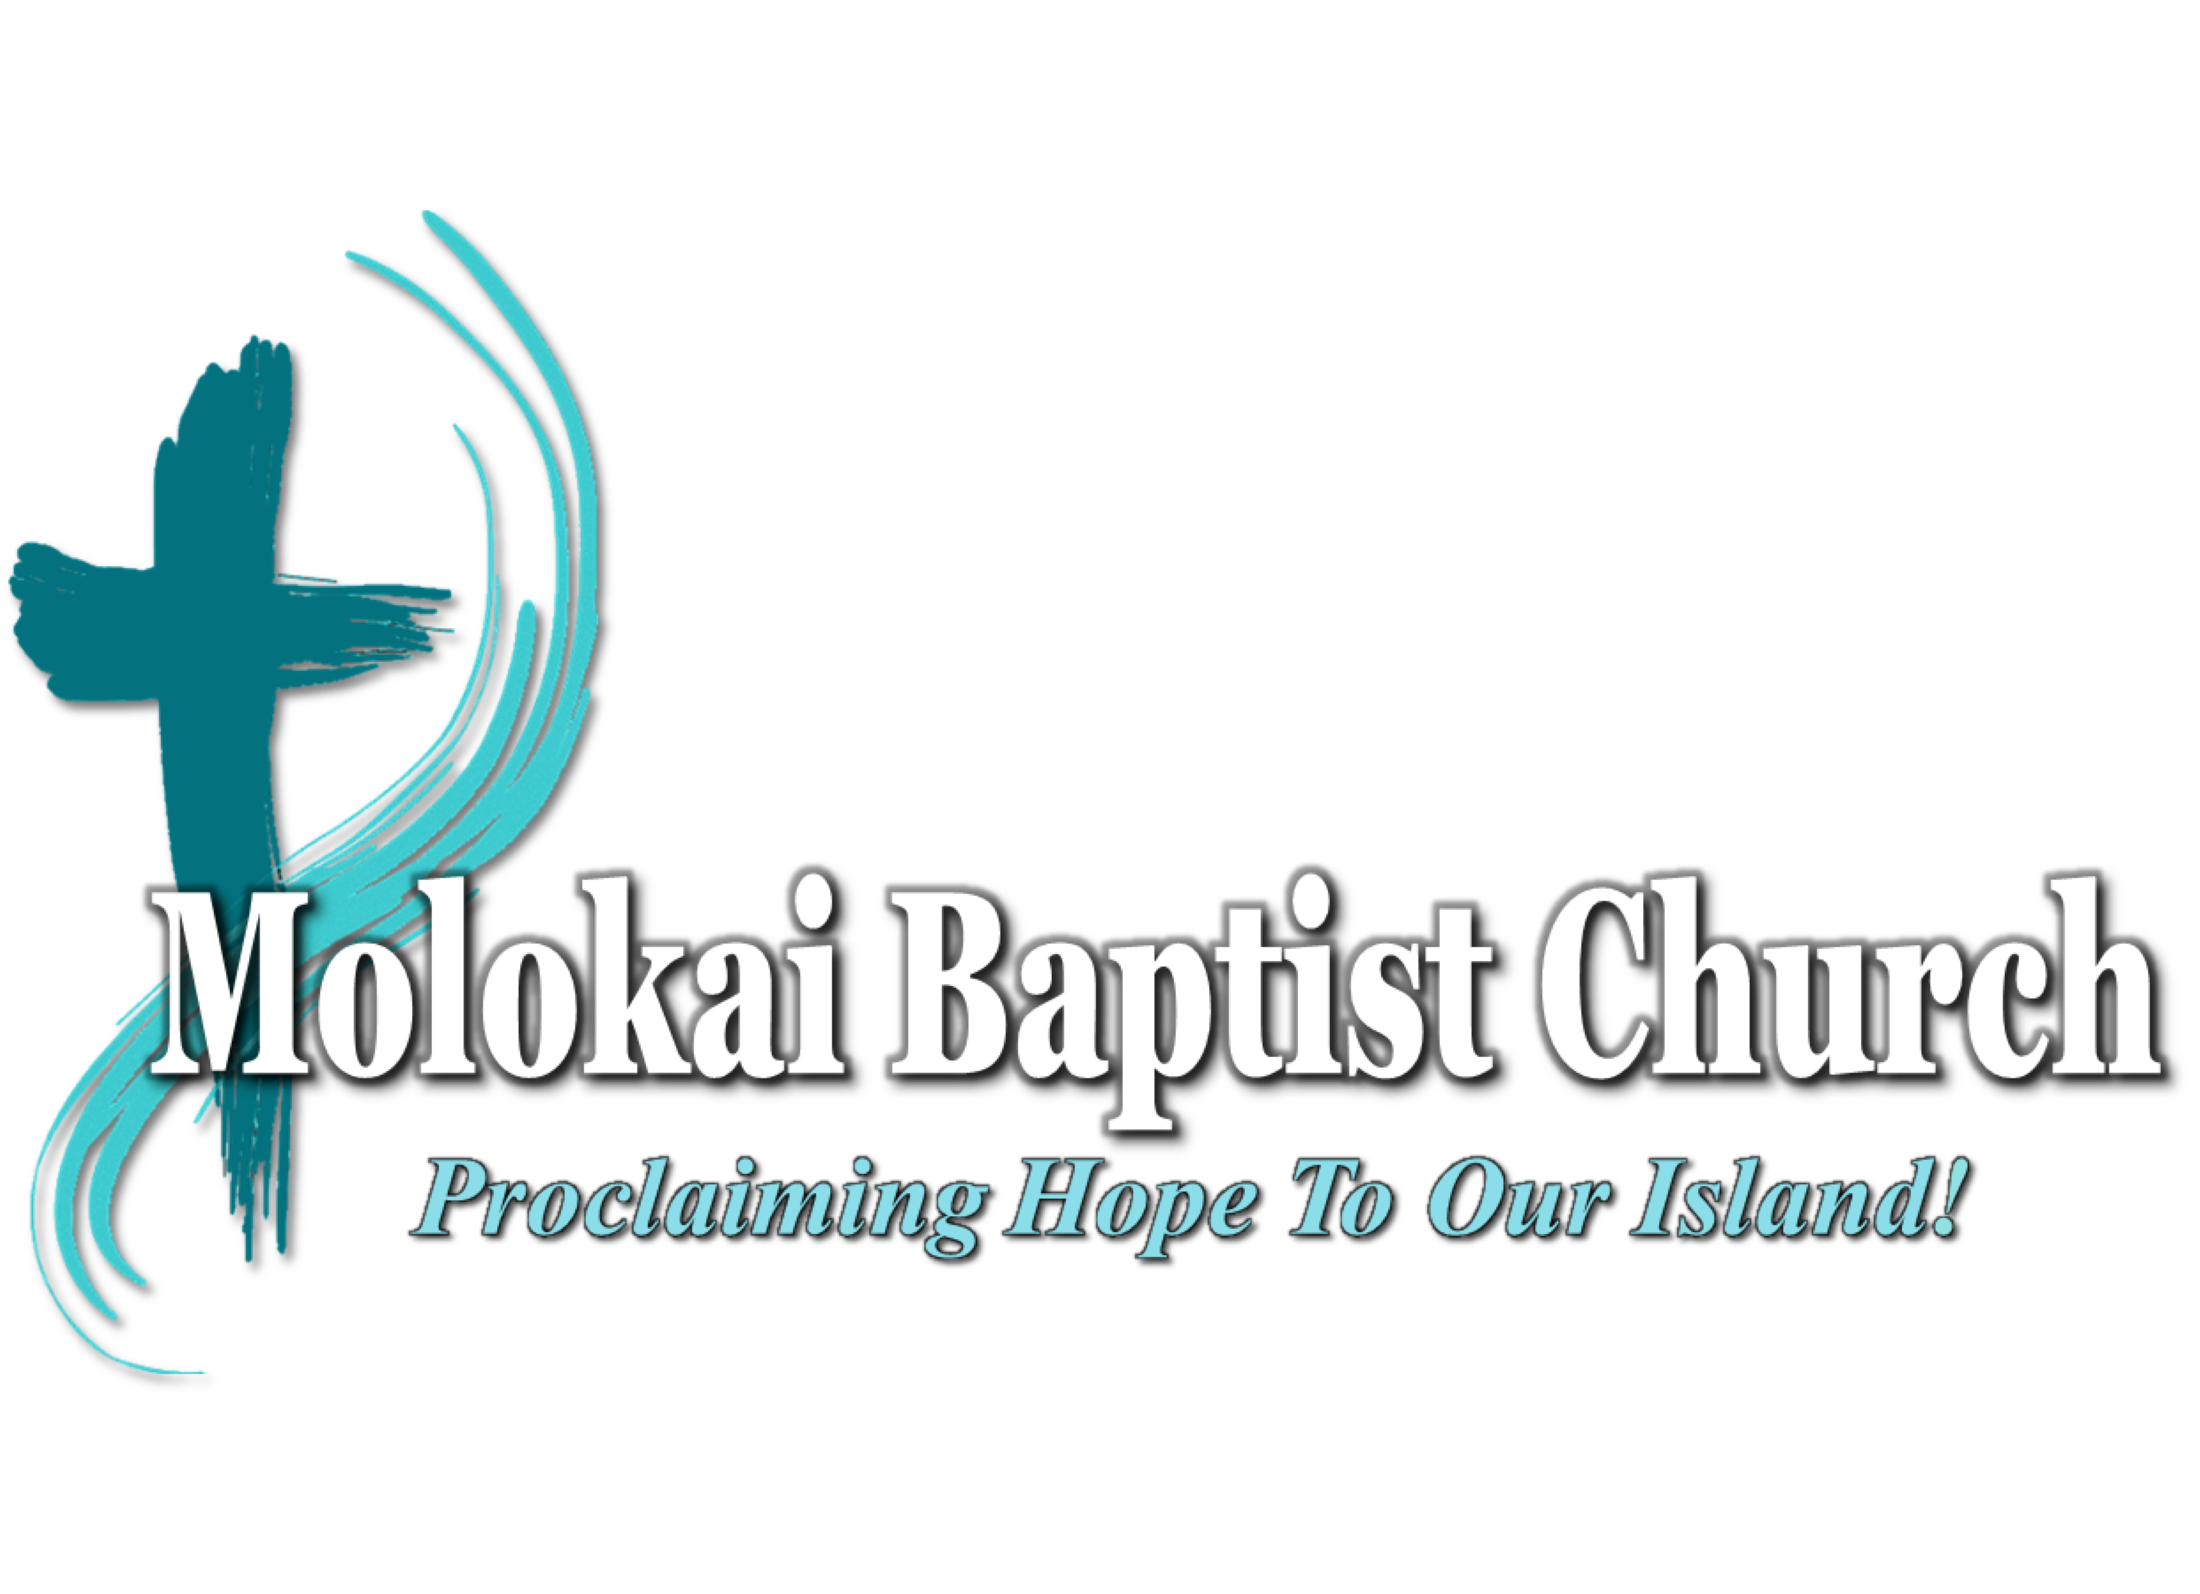 Molokai Baptist Church